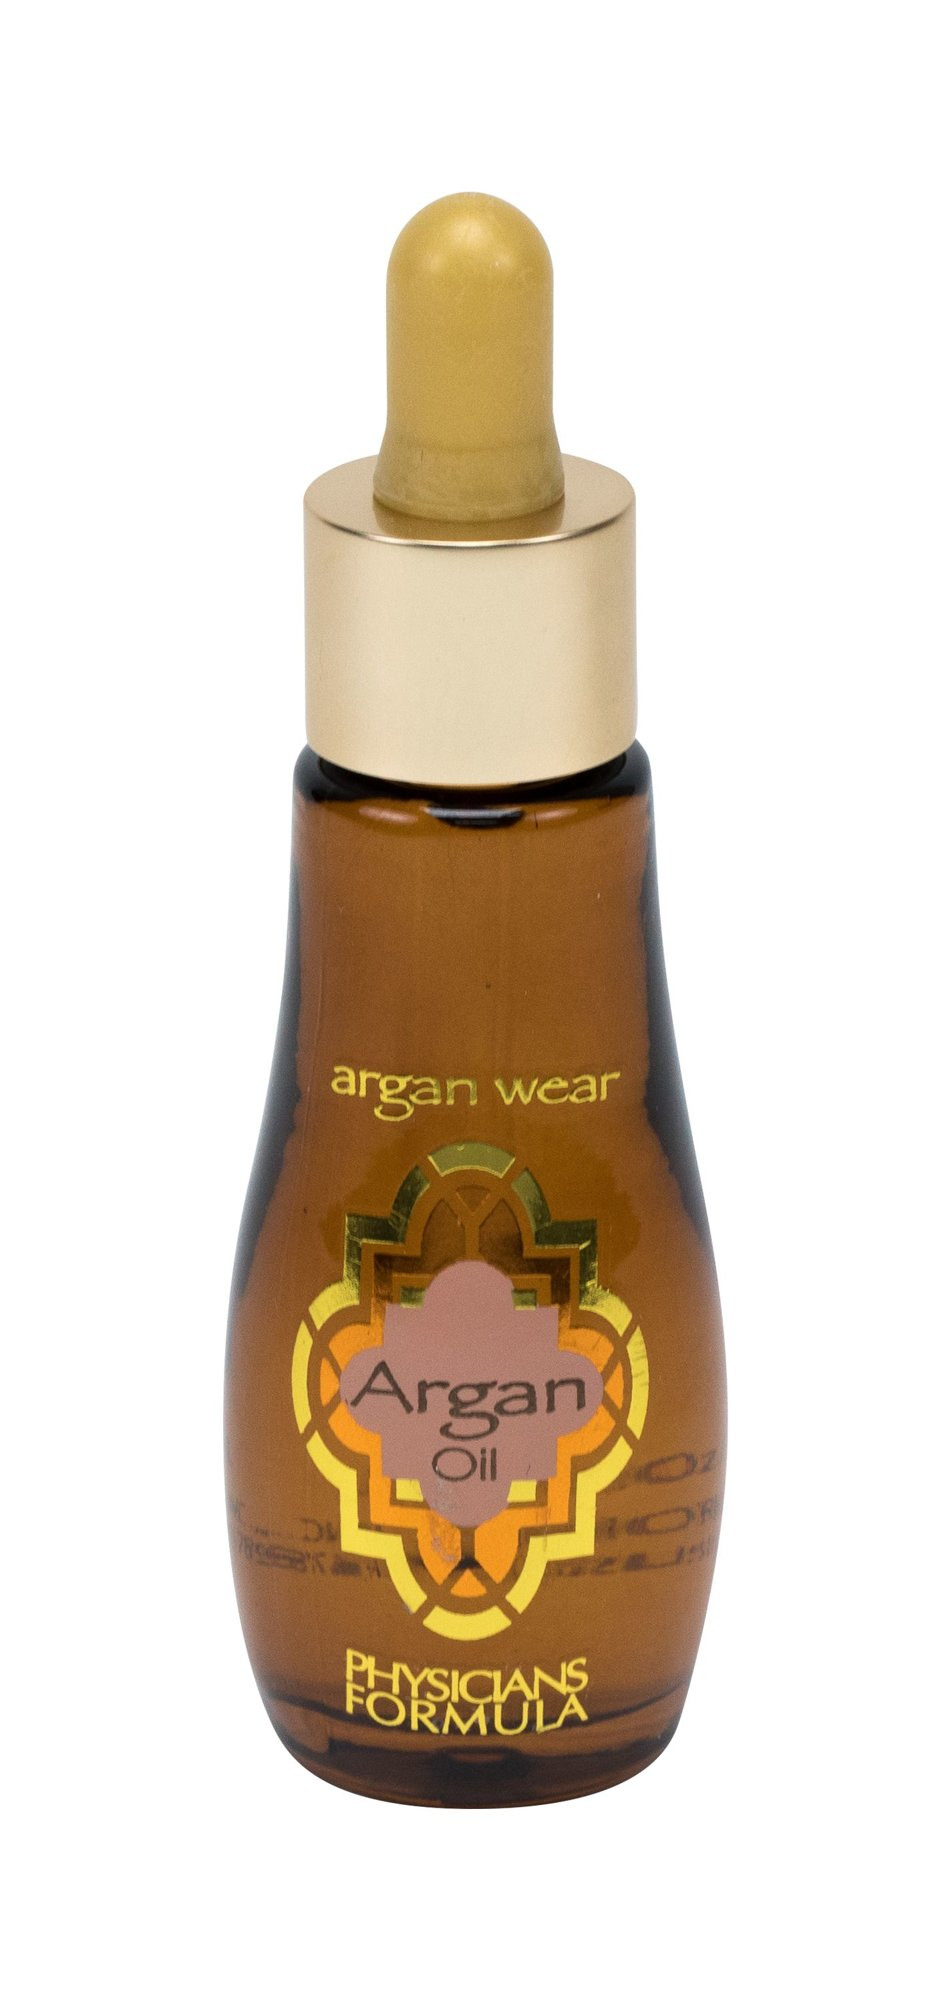 Physicians Formula Argan Wear Ultra-Nourishing Argan Oil, Testápoló olaj 30ml